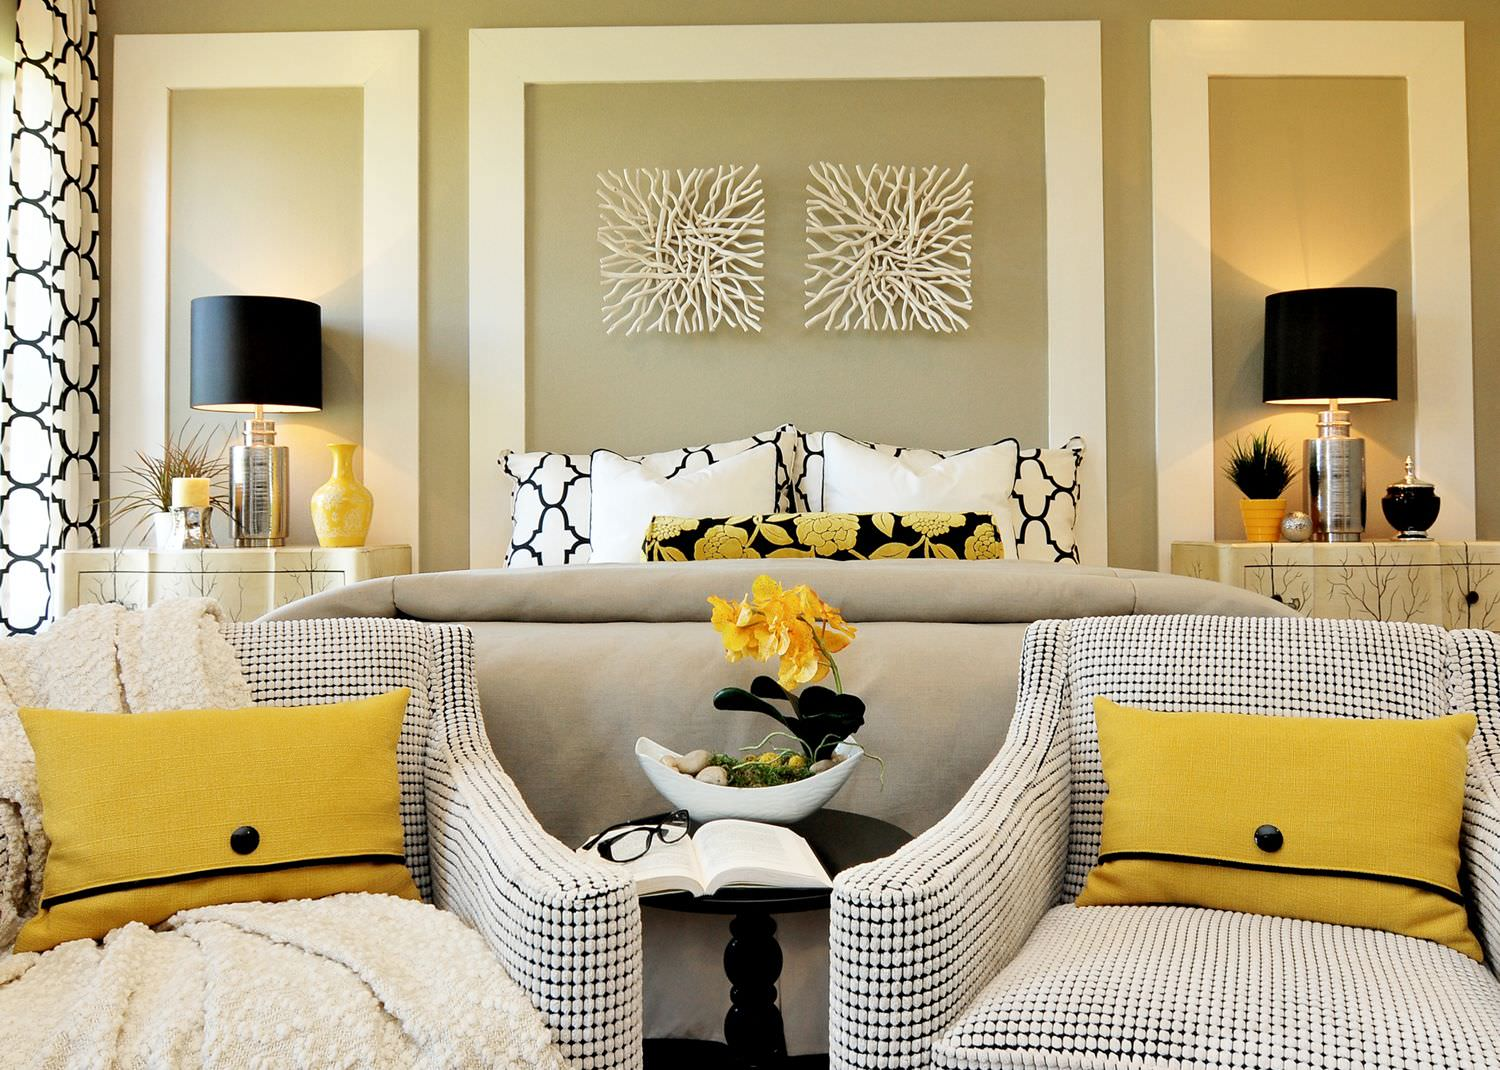 this bedroom would not be the same without yellow details using